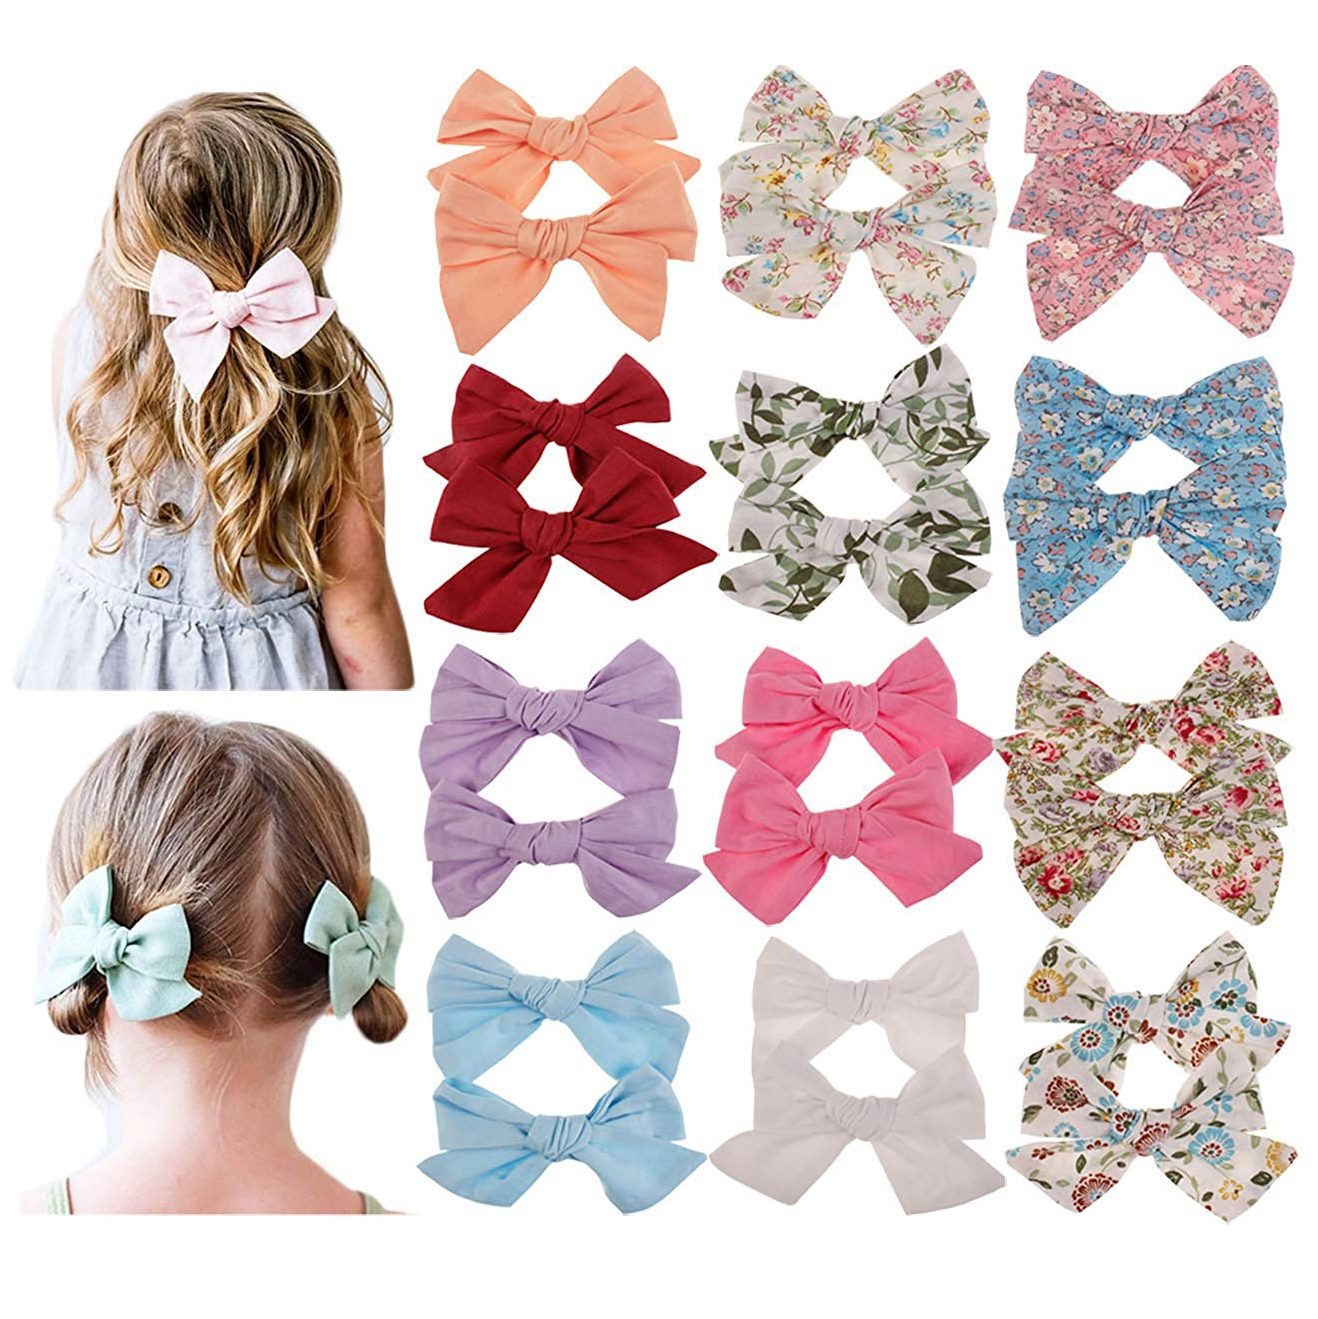 Printed Bow Hair Clip Set